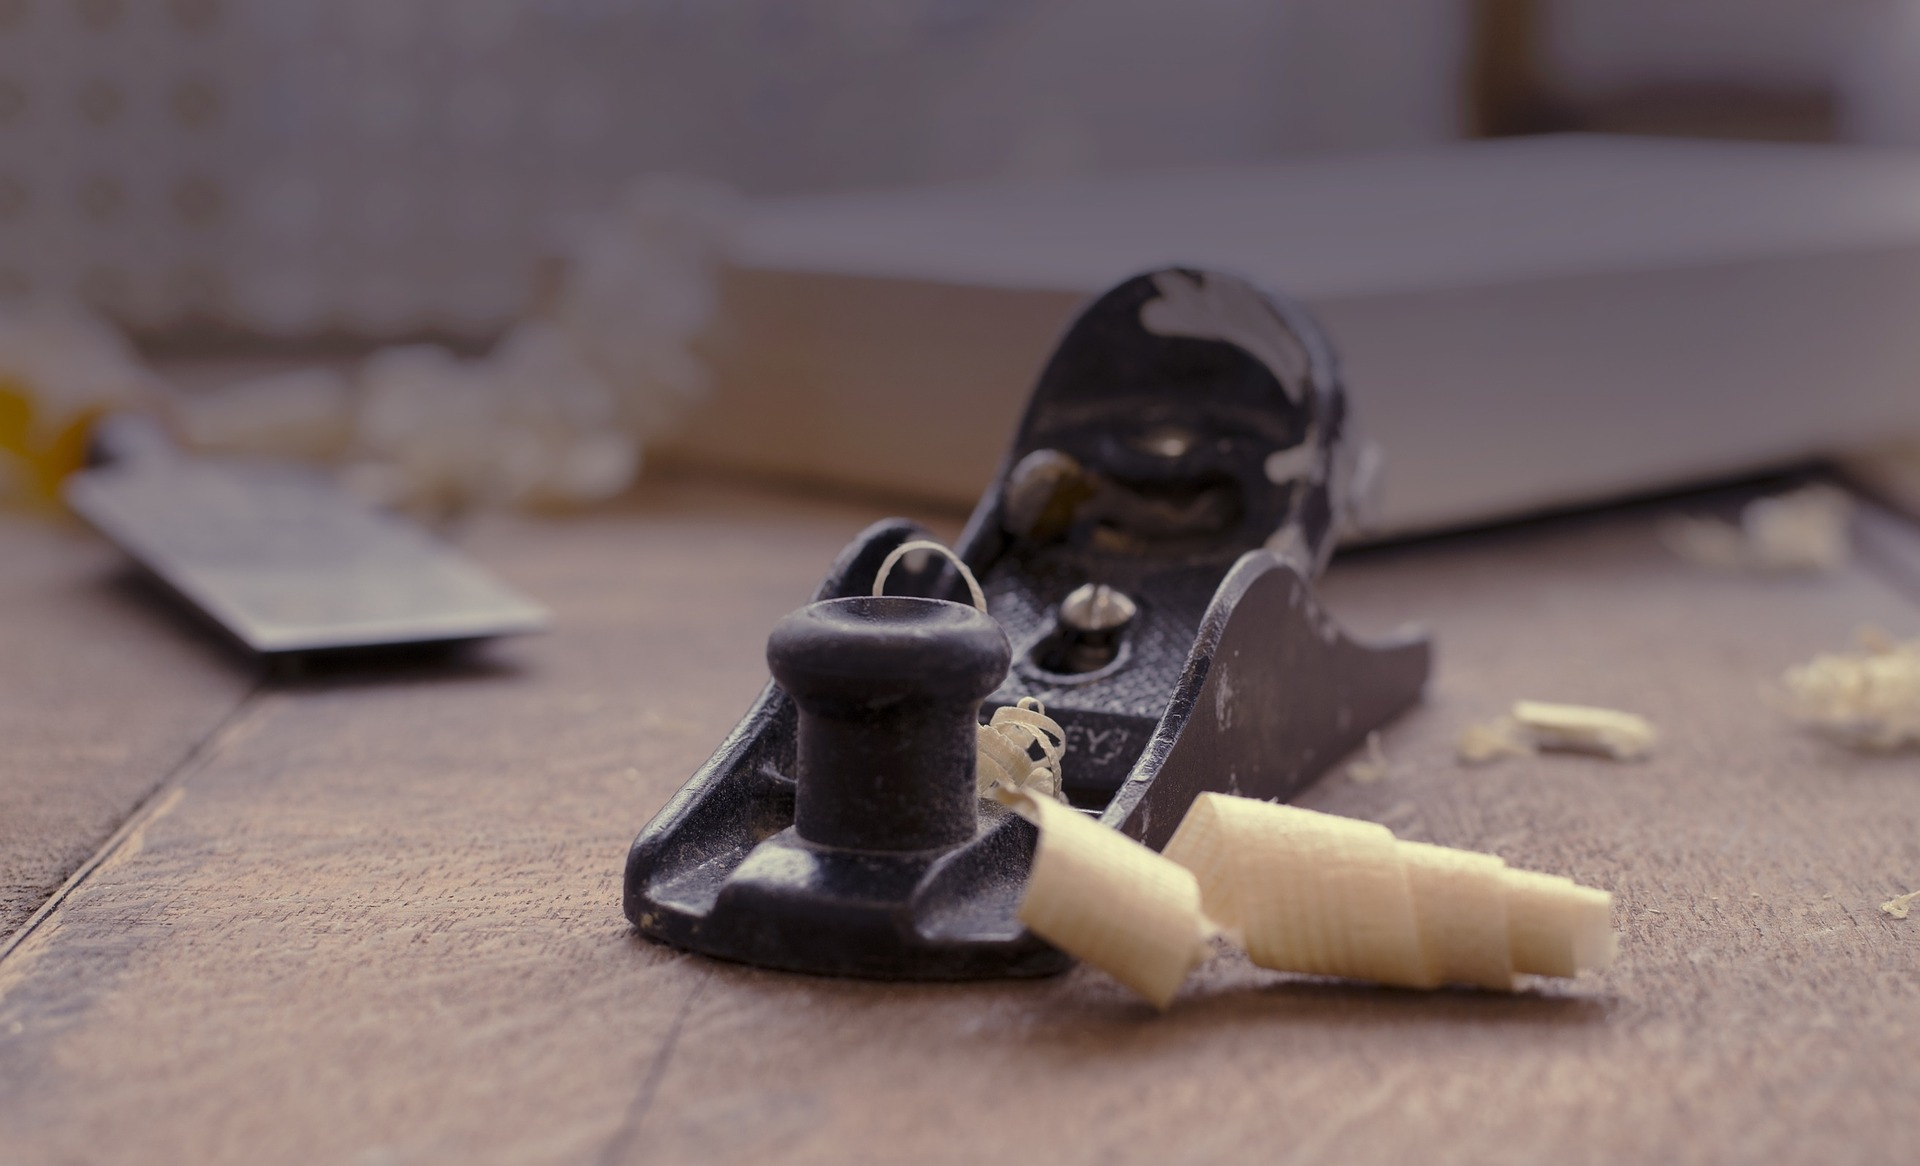 a woodworkers plane and sawdust sprucing used to spruce up a home